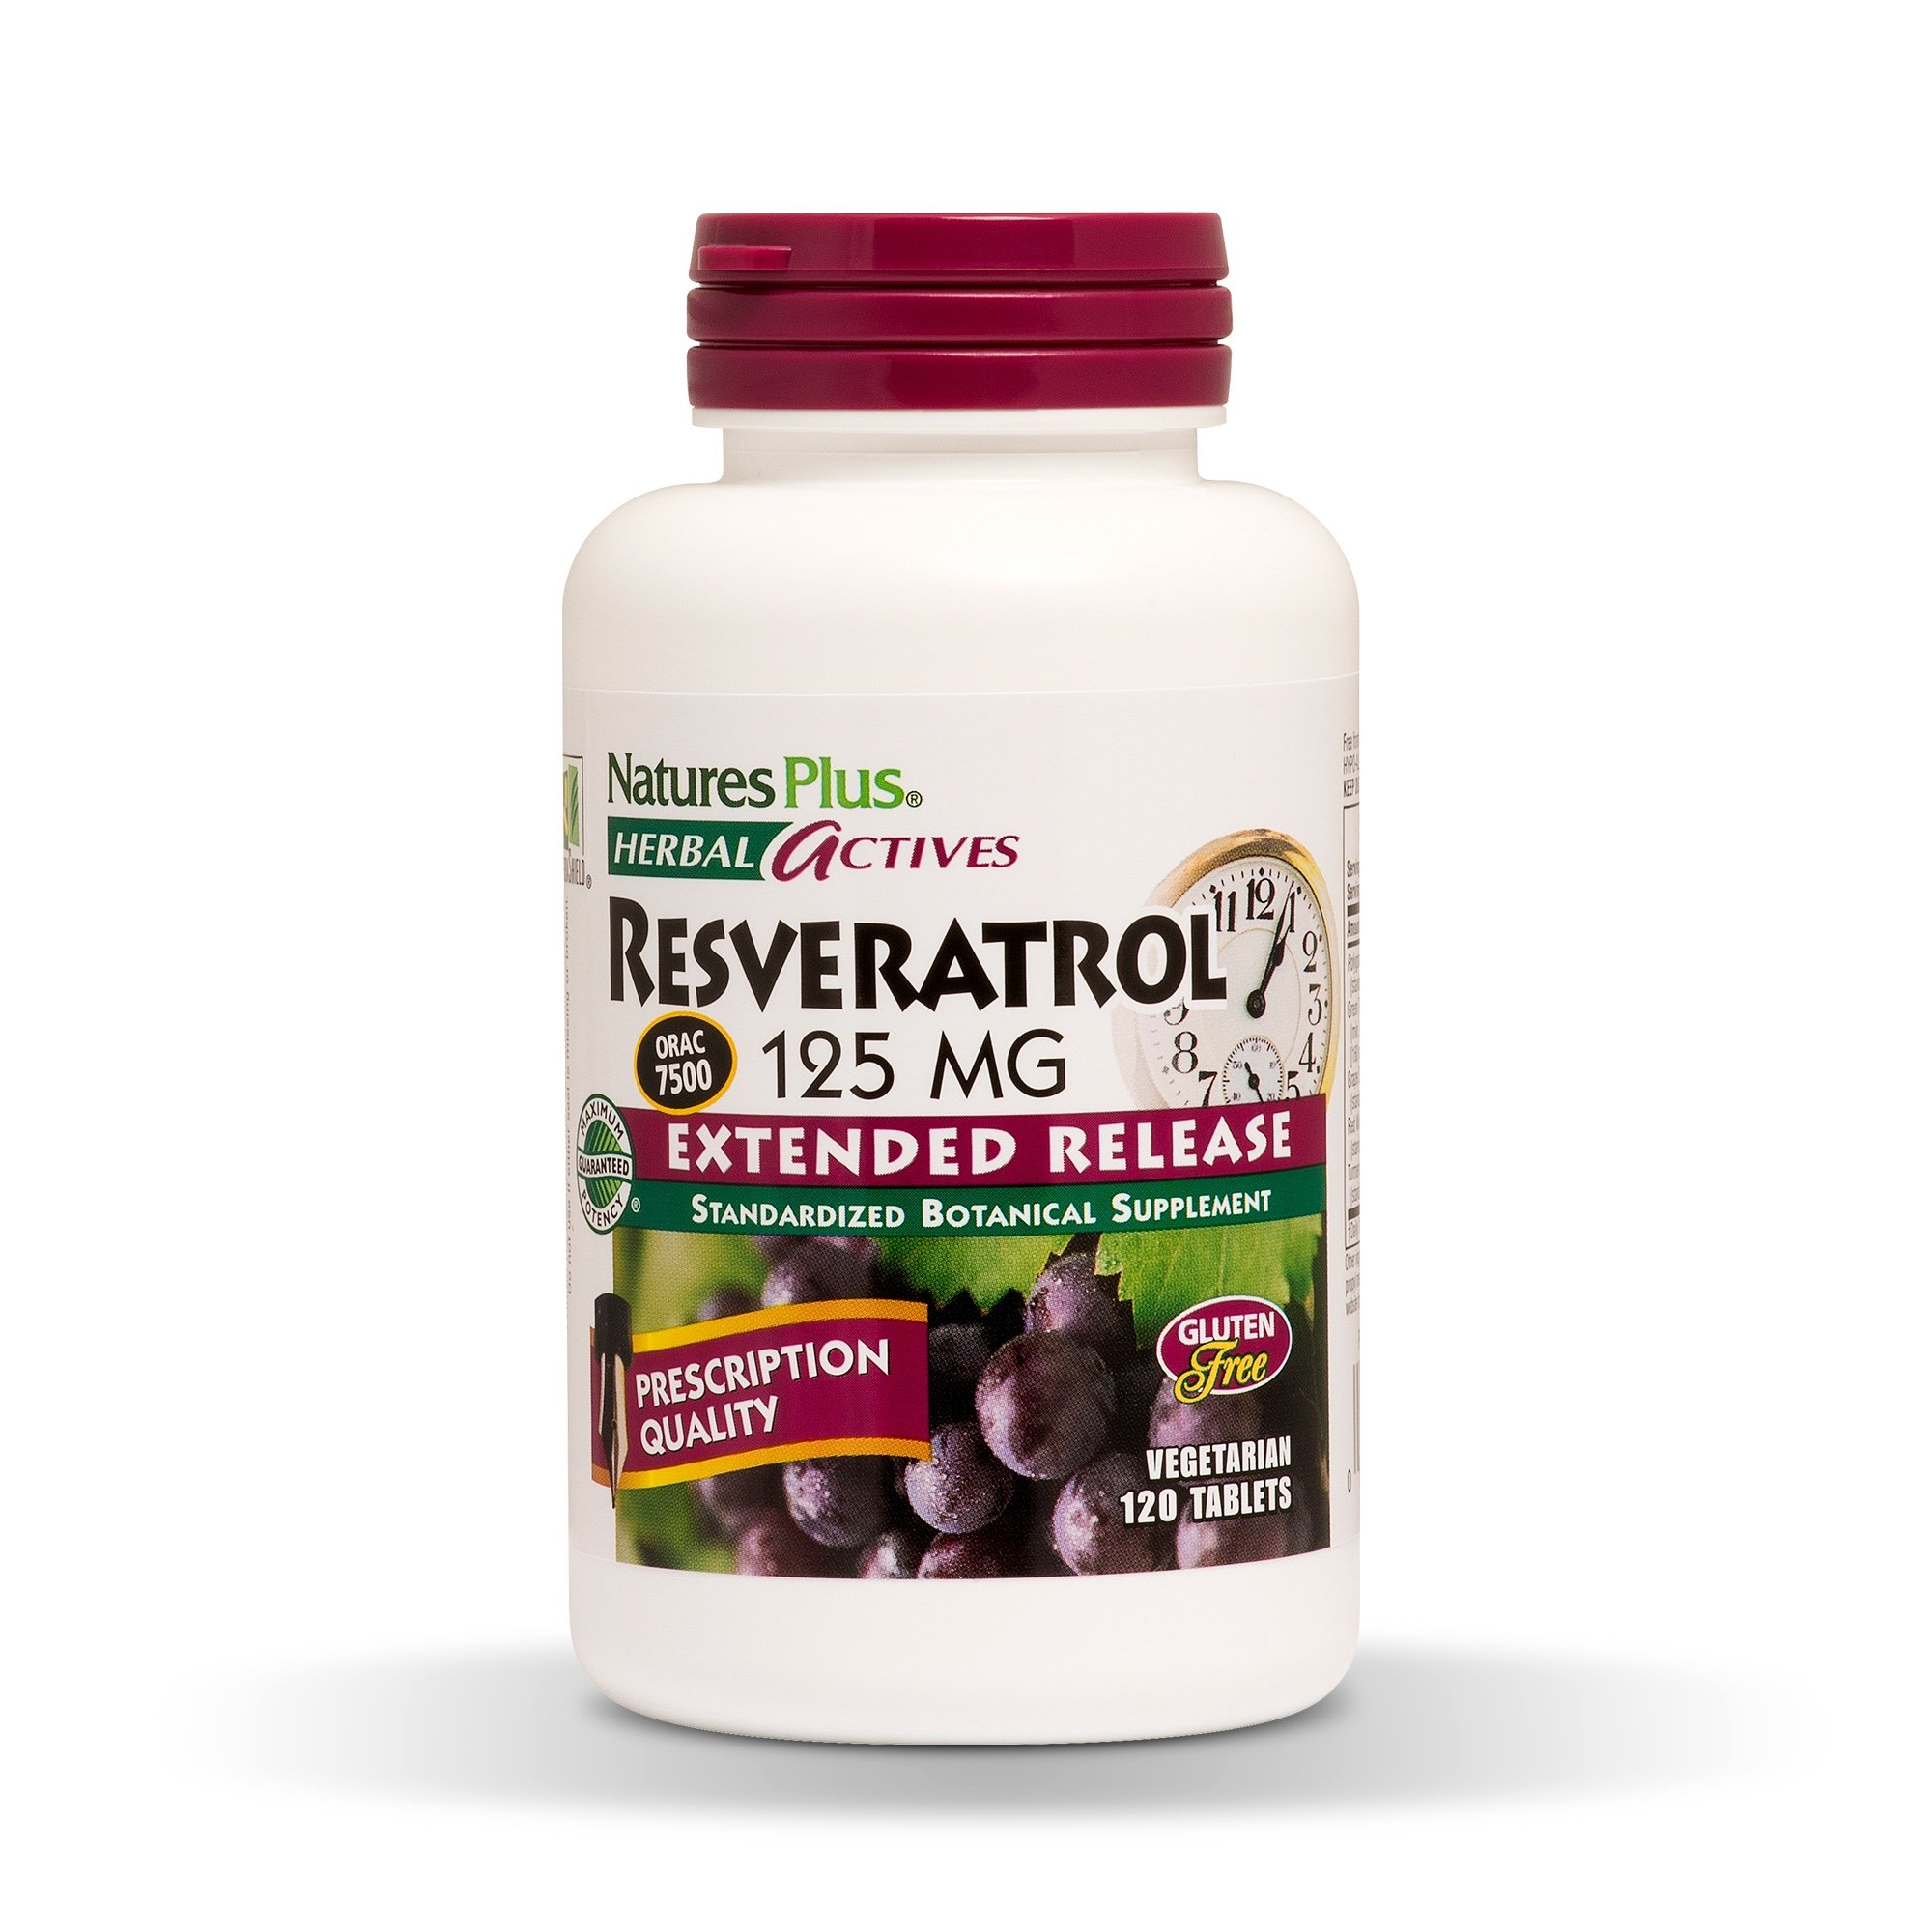 NaturesPlus Herbal Actives Resveratrol, Extended Release - 125 mg, 120 Vegetarian Tablets - Prescription Quality Antioxidant Supplement, Free Radical Defense - Gluten-Free - 60 Servings by Nature's Plus